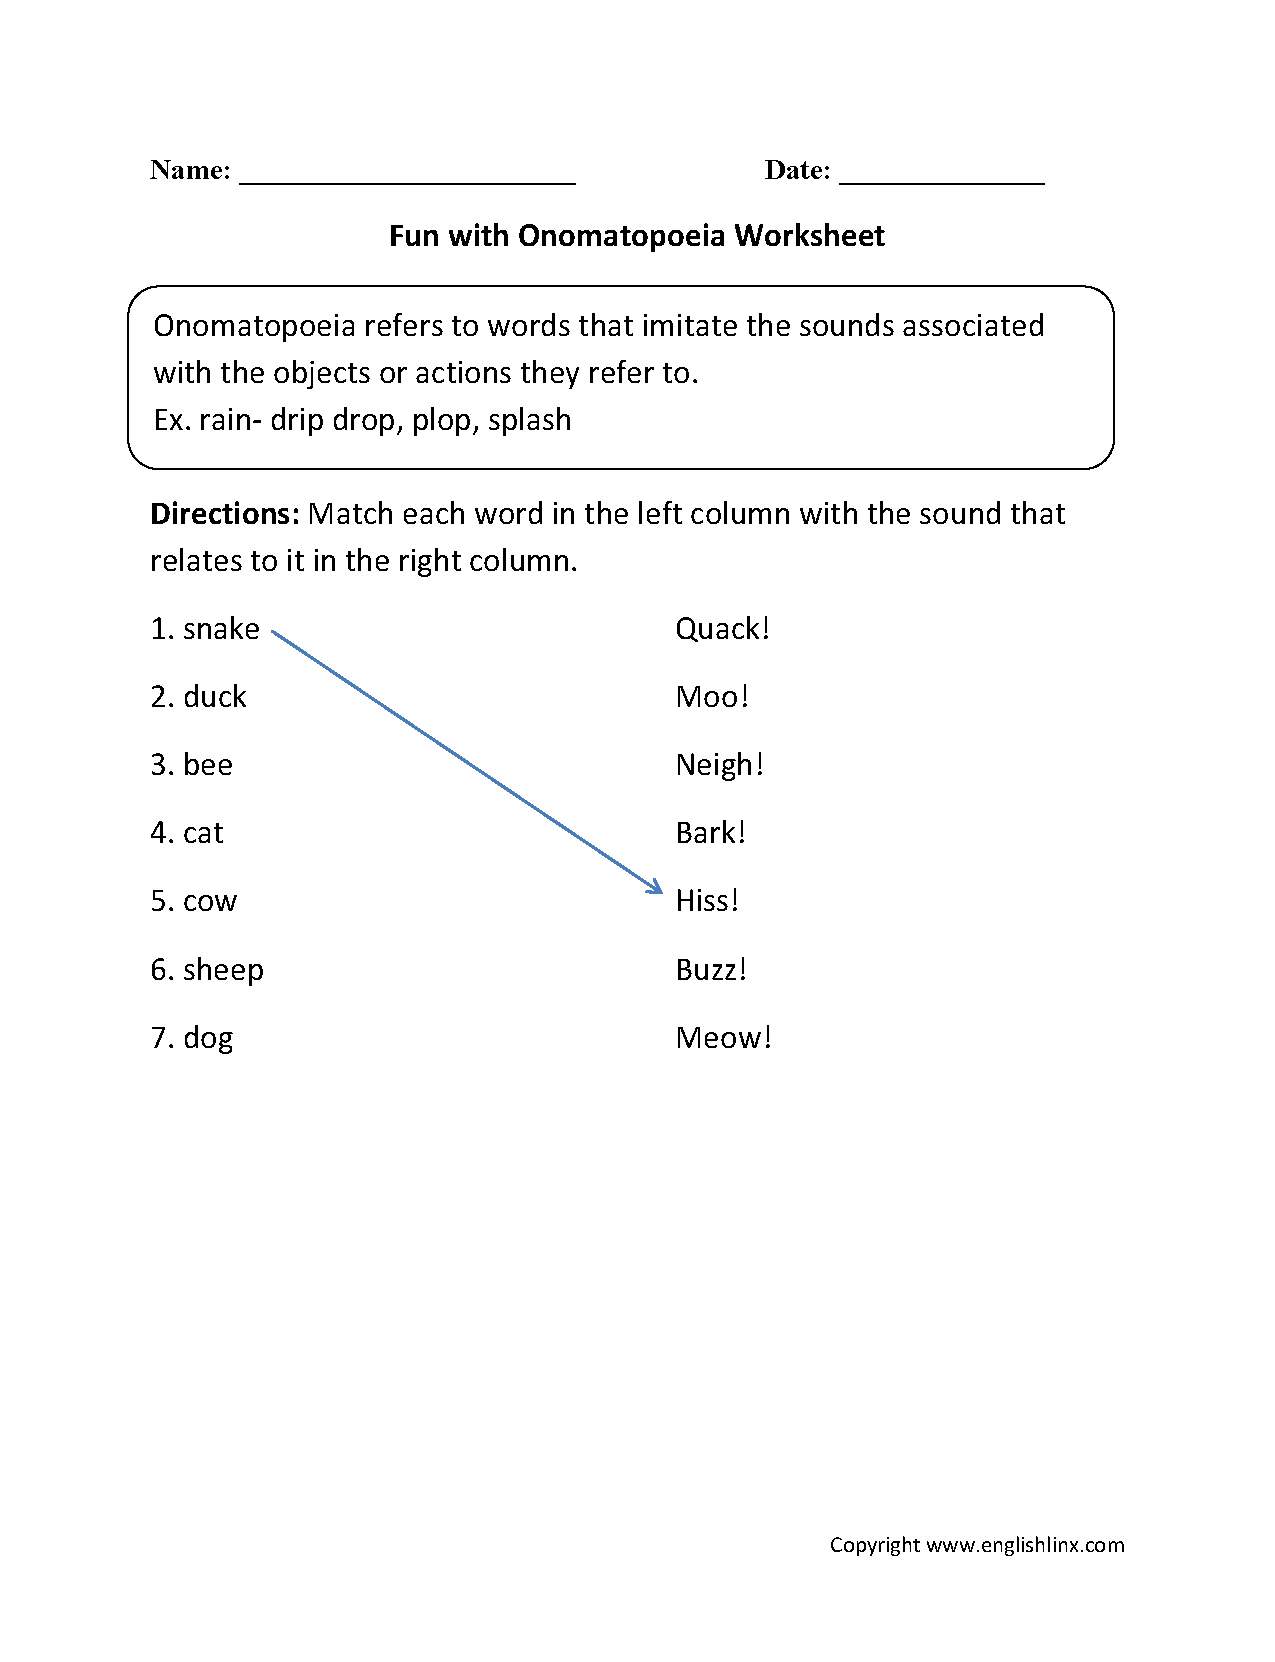 Printables Vocabulary Worksheets Pdf 3rd grade vocabulary worksheets pdf angel pdf